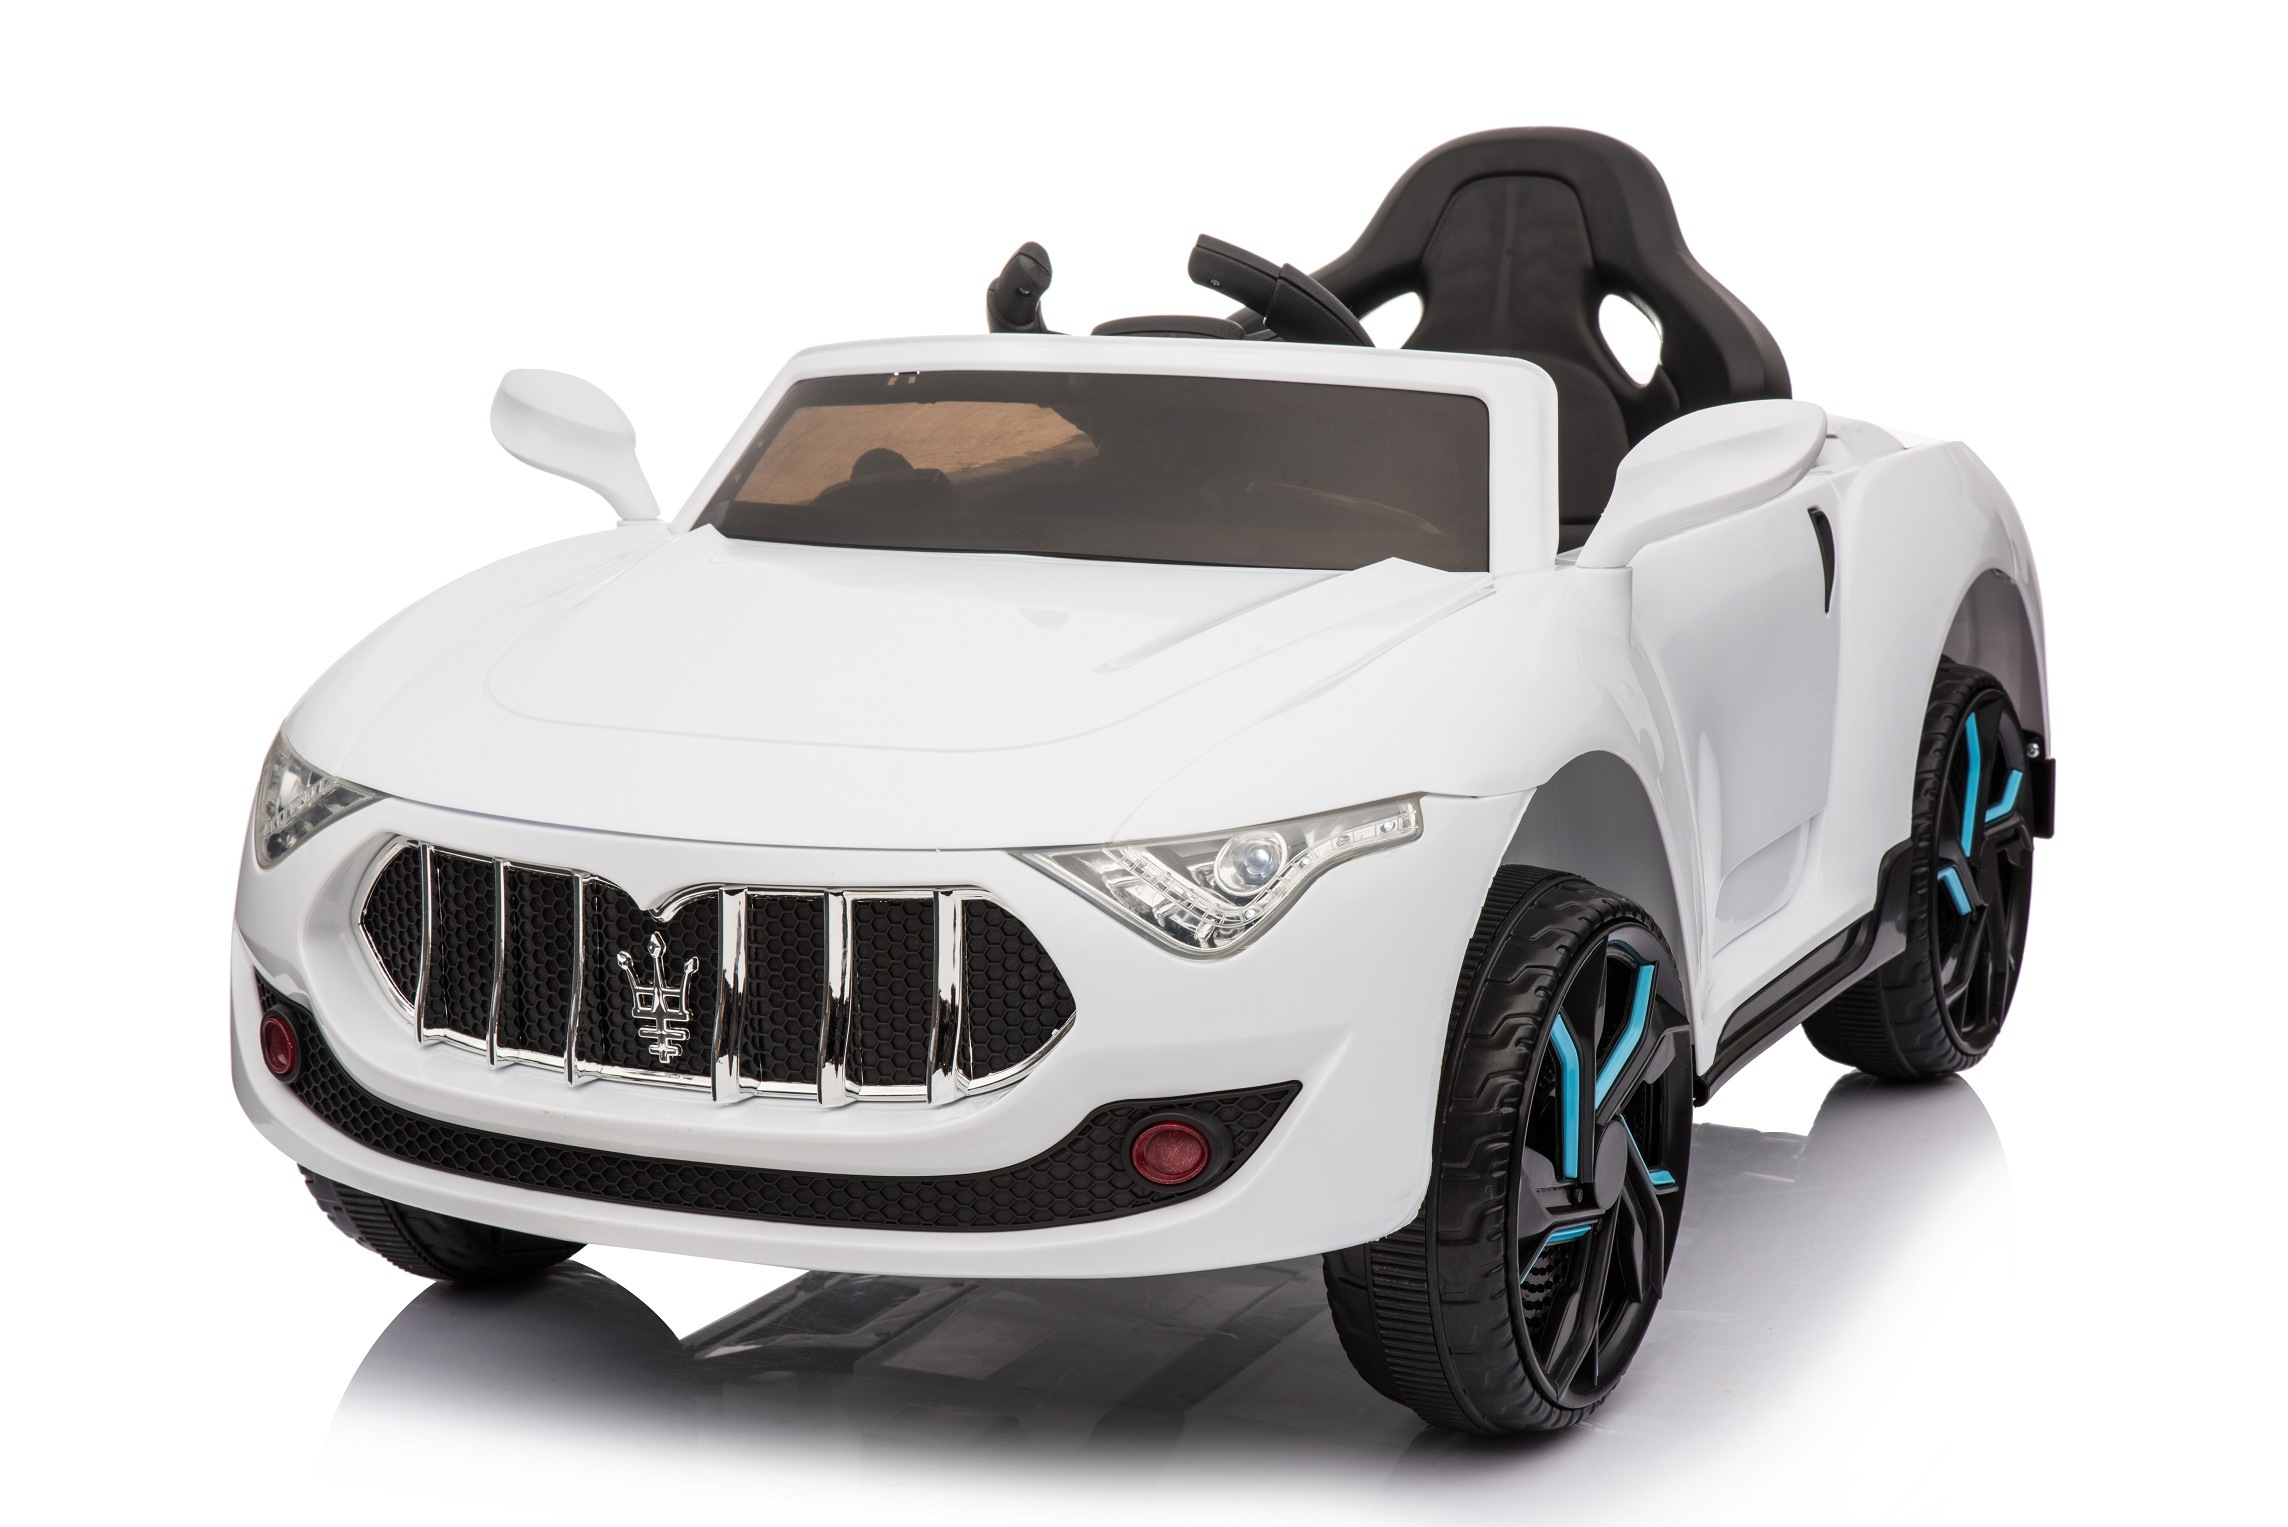 China Motor For Kids Cars Kid Car Electric With Remote Control China Kid Car Electric With Remote Control And Electric Motor For Kids Cars Price